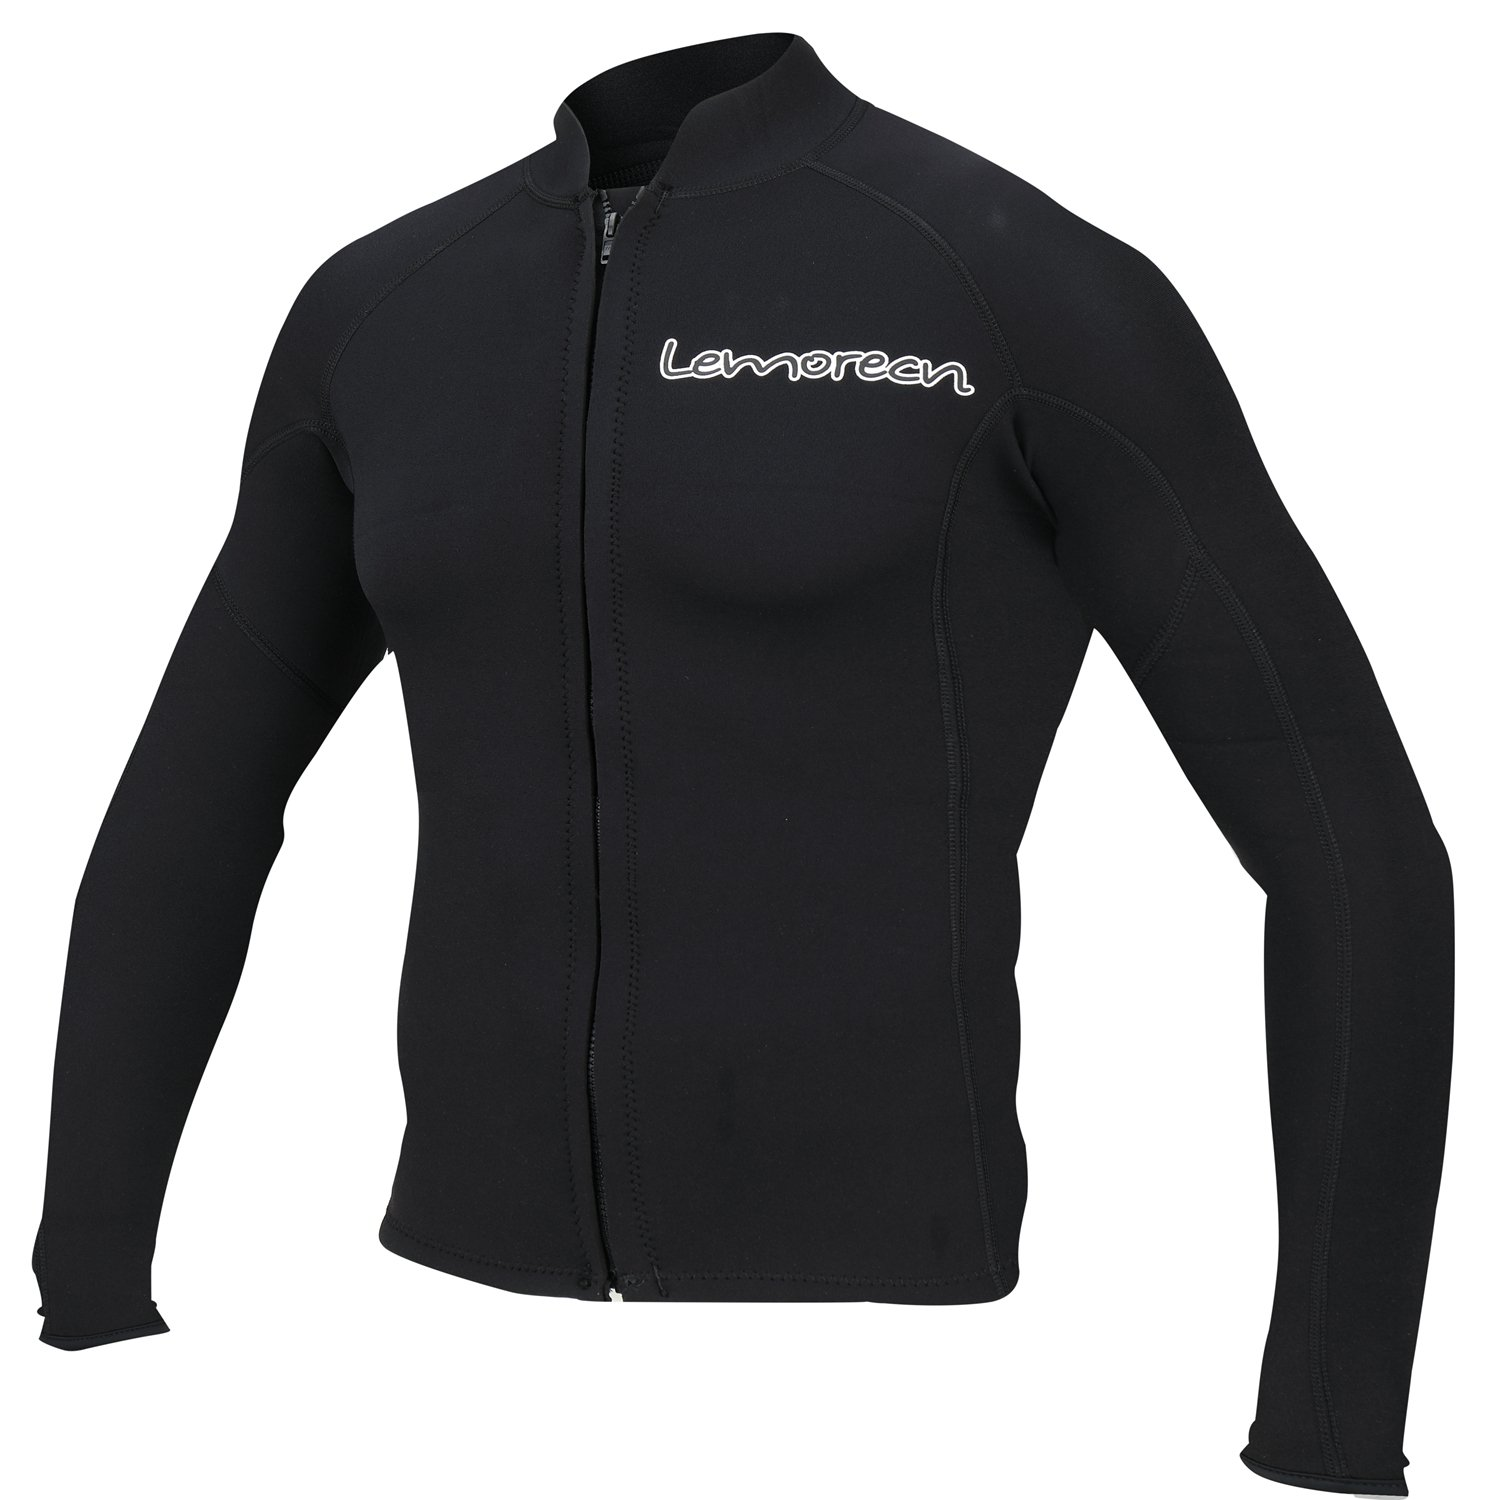 Lemorecn Men's 2mm Wetsuits Jacket Long Sleeve Neoprene Wetsuits Top(2021blackS) by Lemorecn